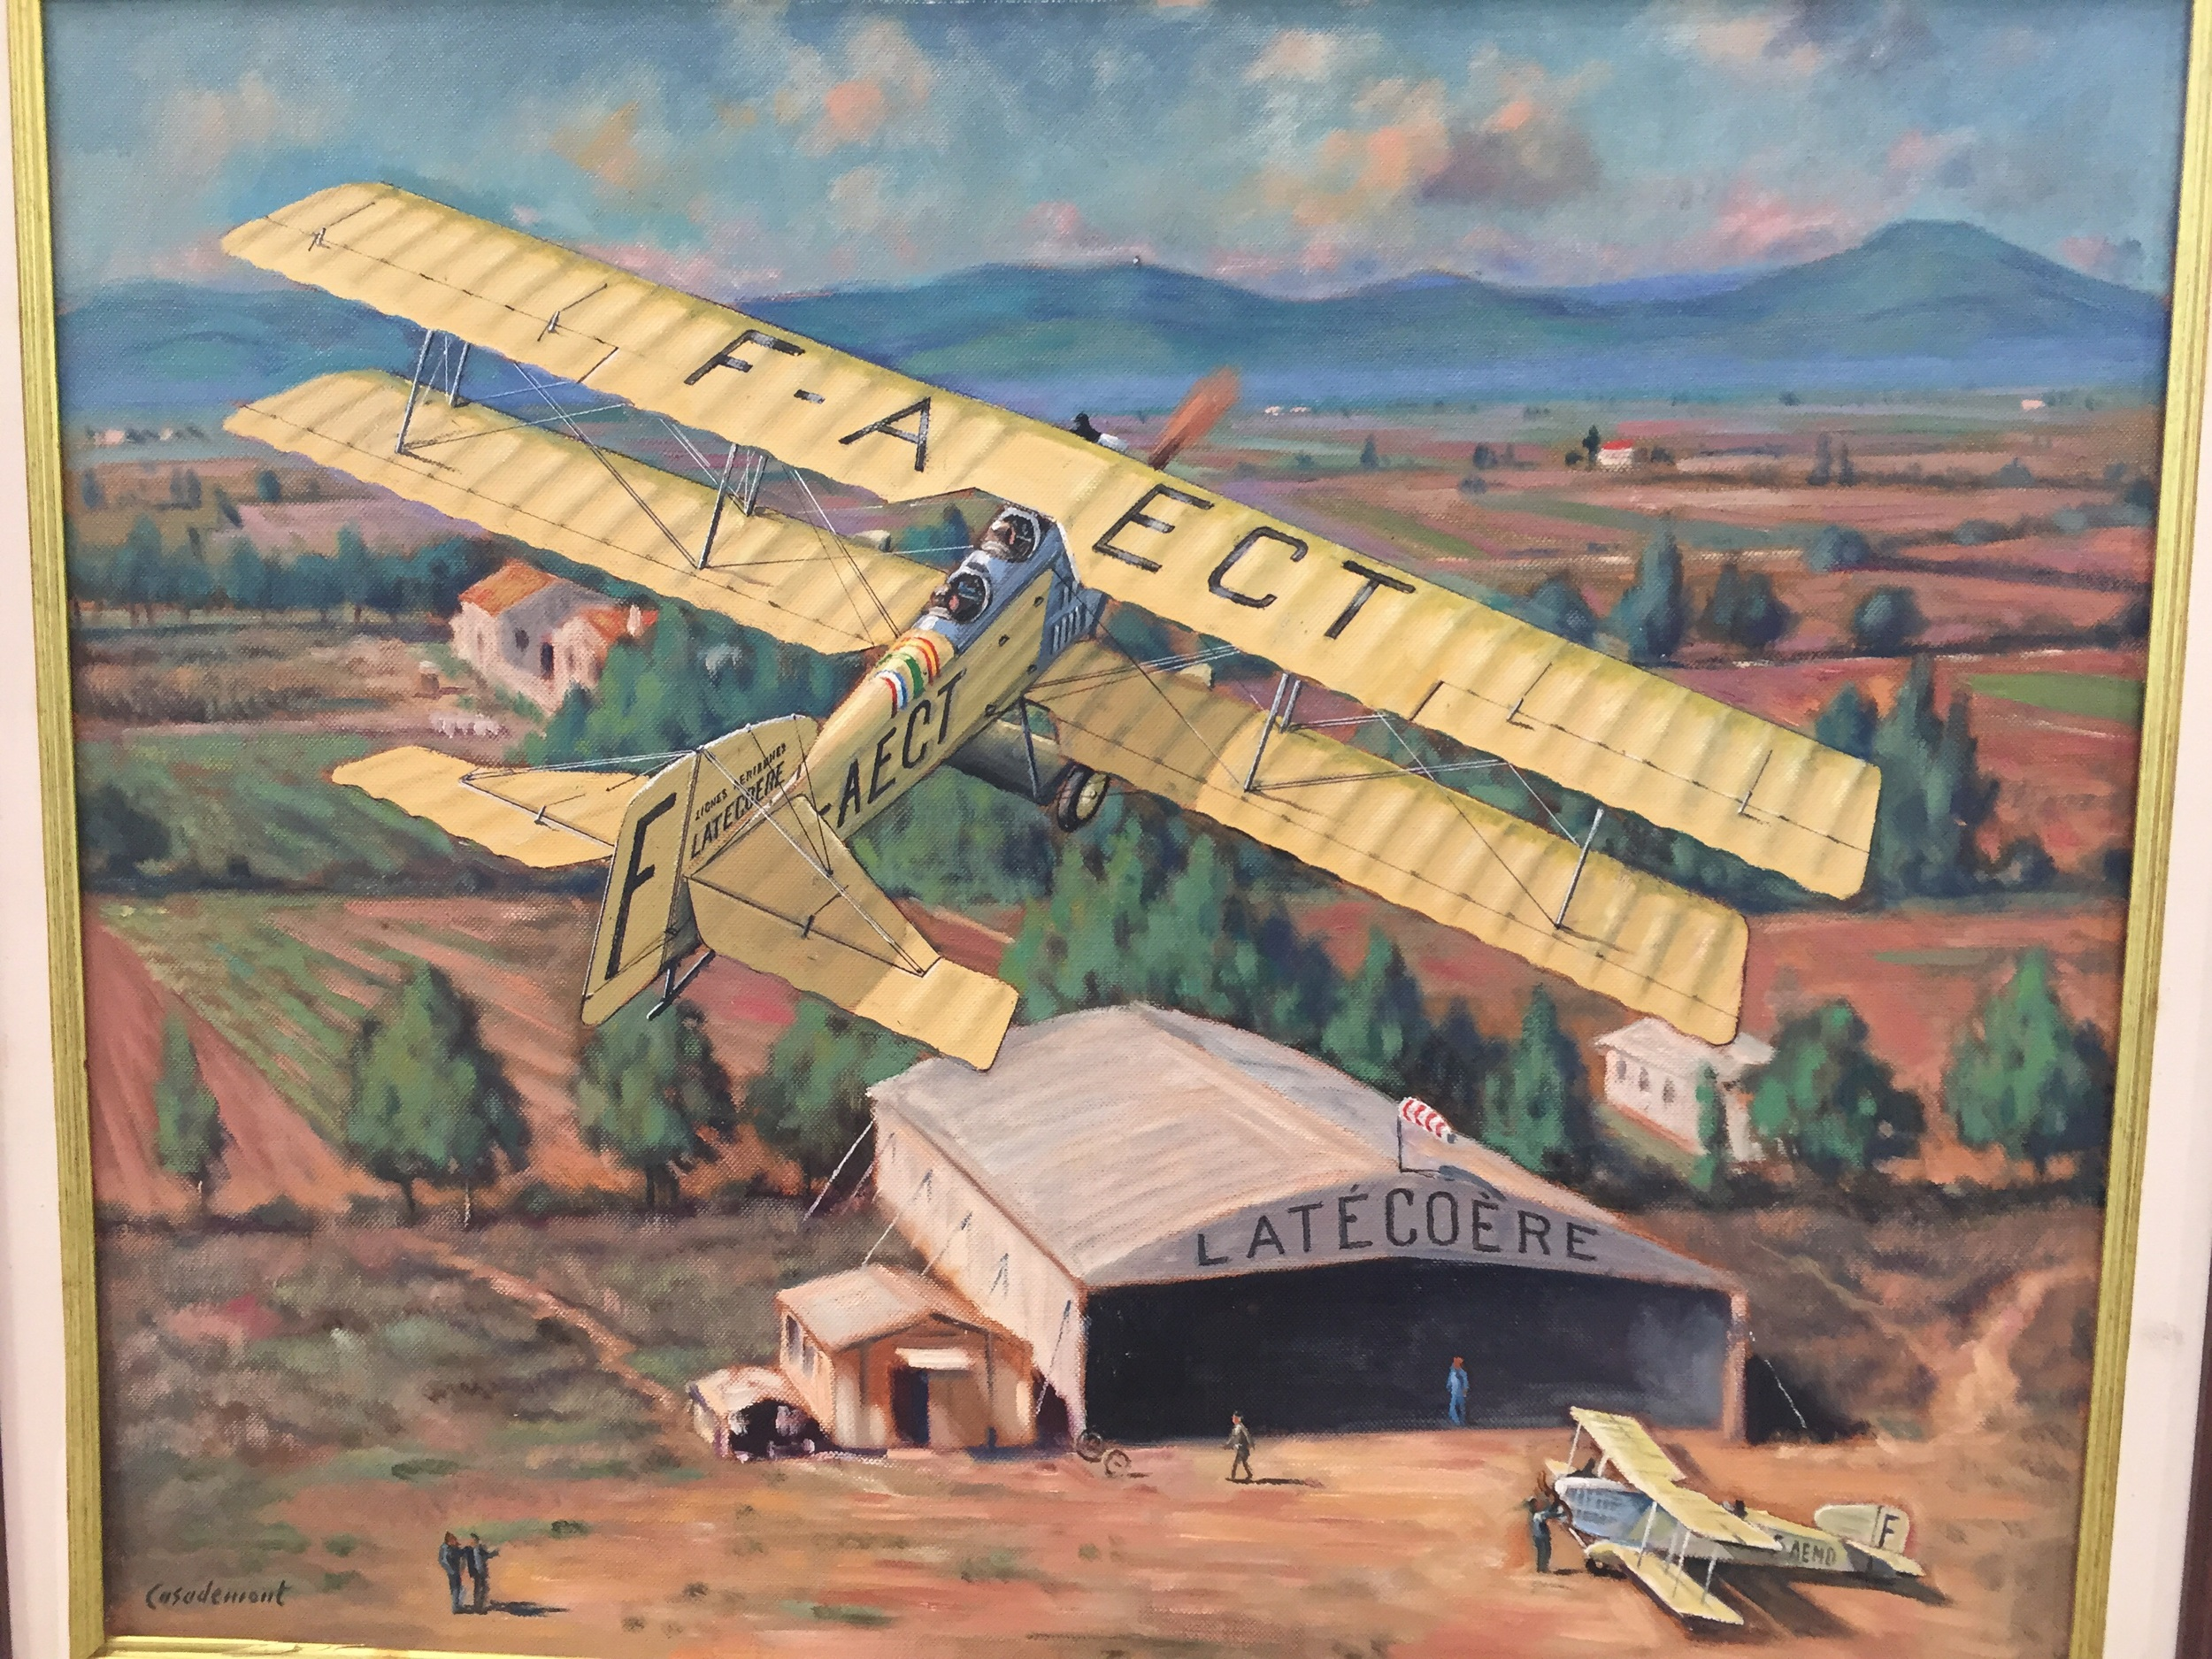 An artist's depiction of the early days of Barcelona airport, with the facilities of French airline Latécoère. After WWI Barcelona became an important stop in the first air route between France and Morocco.